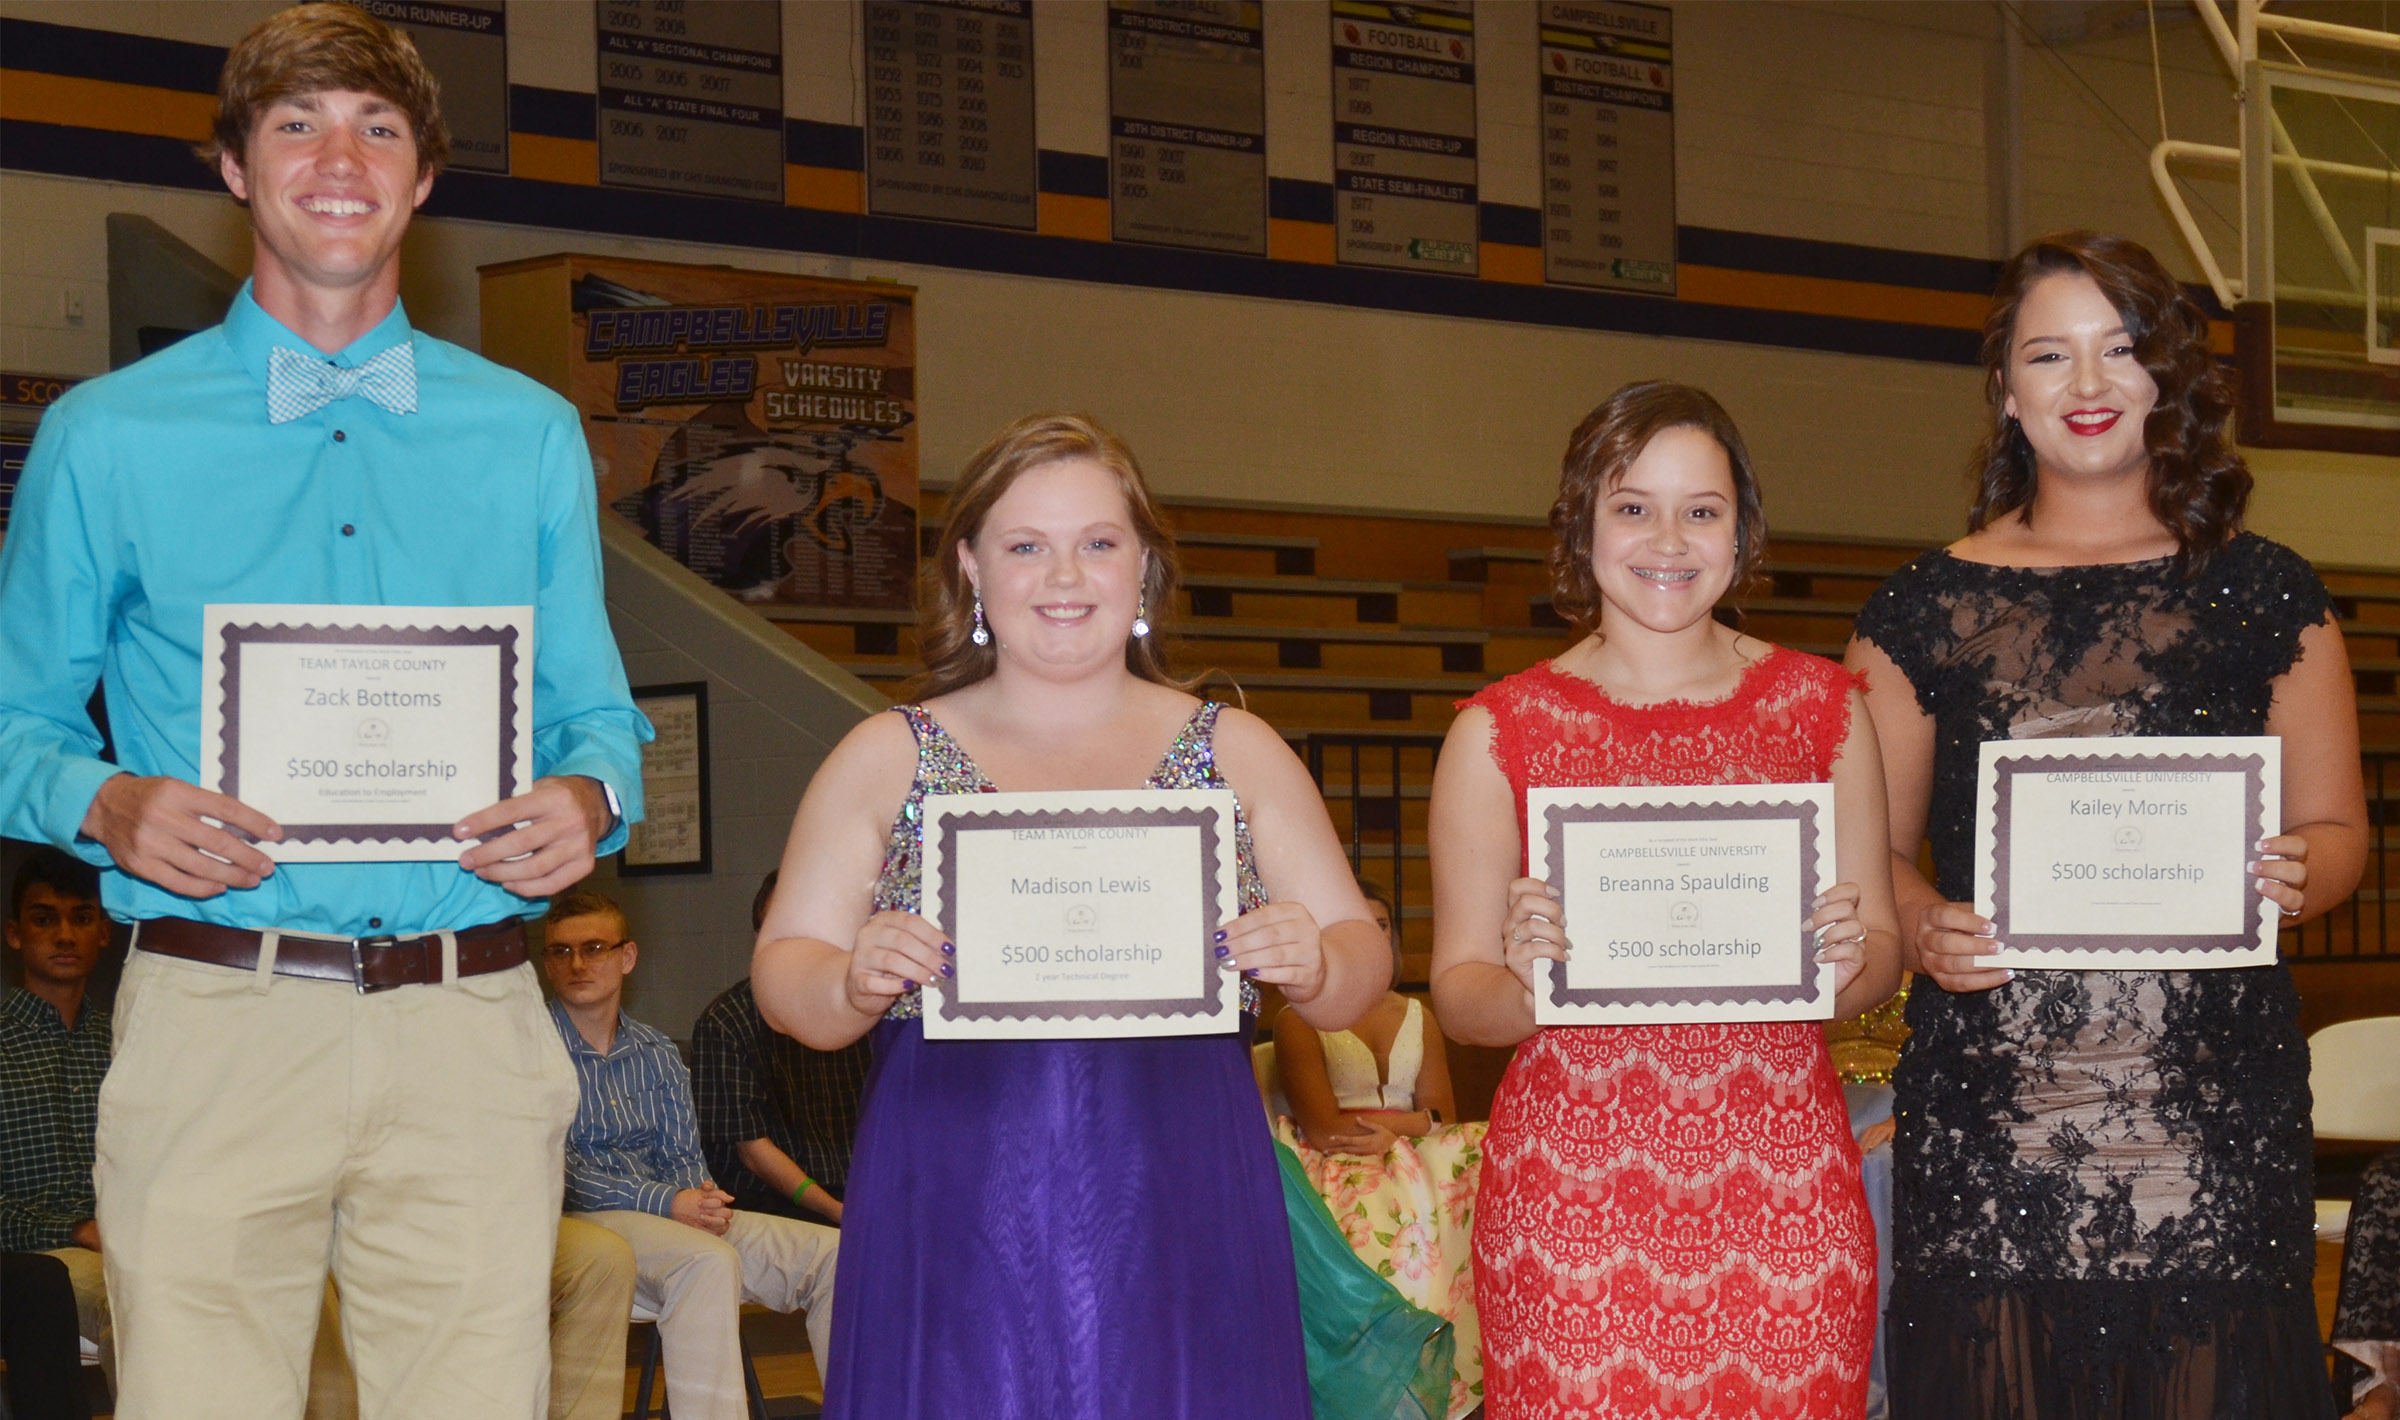 Receiving Taylor County Education Consortium scholarships are, from left, Zack Bottoms, Madison Lewis, Breanna Spaulding and Kailey Morris.